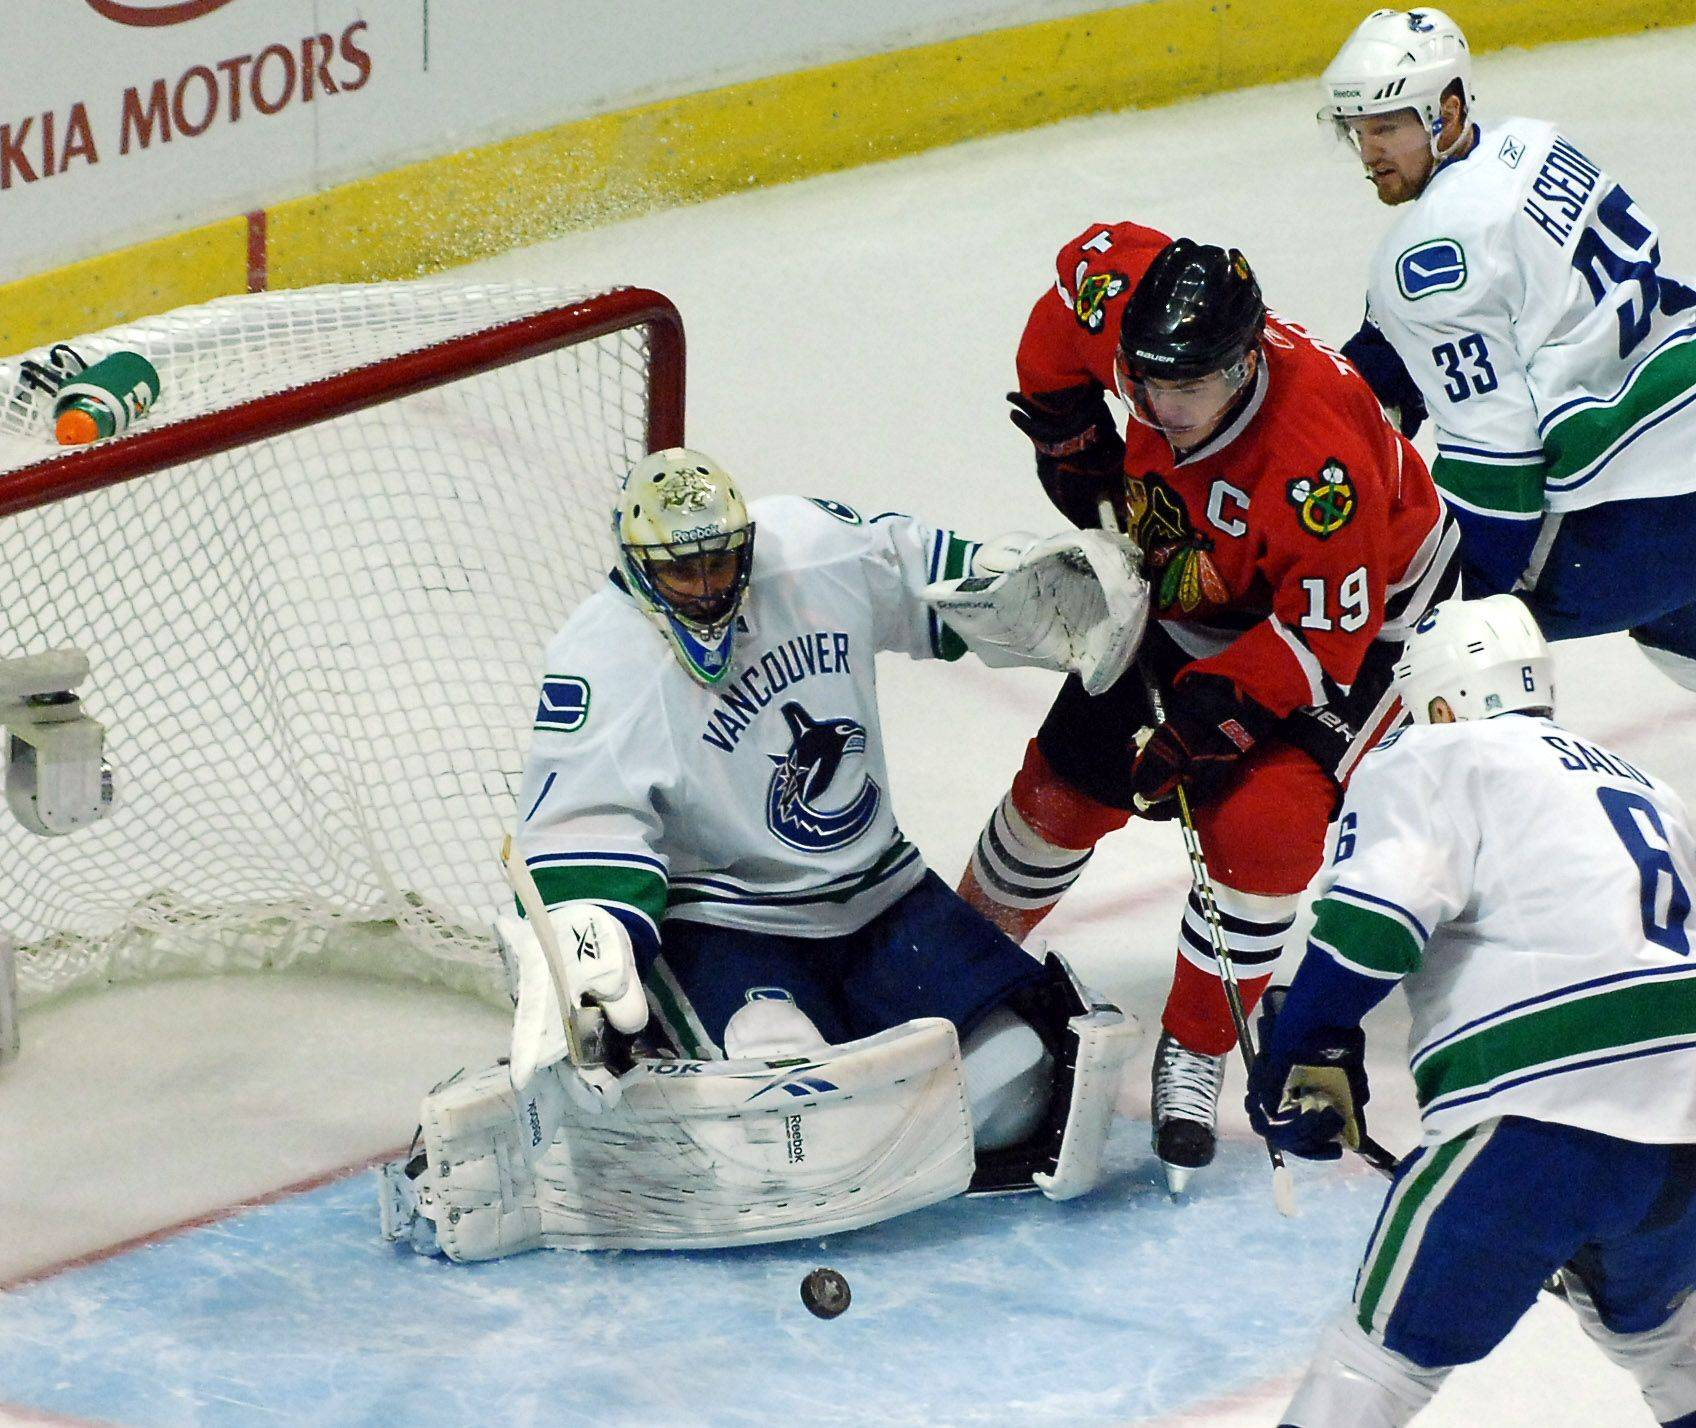 Chicago Blackhawks center Jonathan Toews is stymied in front of the goal by Vancouver Canucks goalie Roberto Luongo.